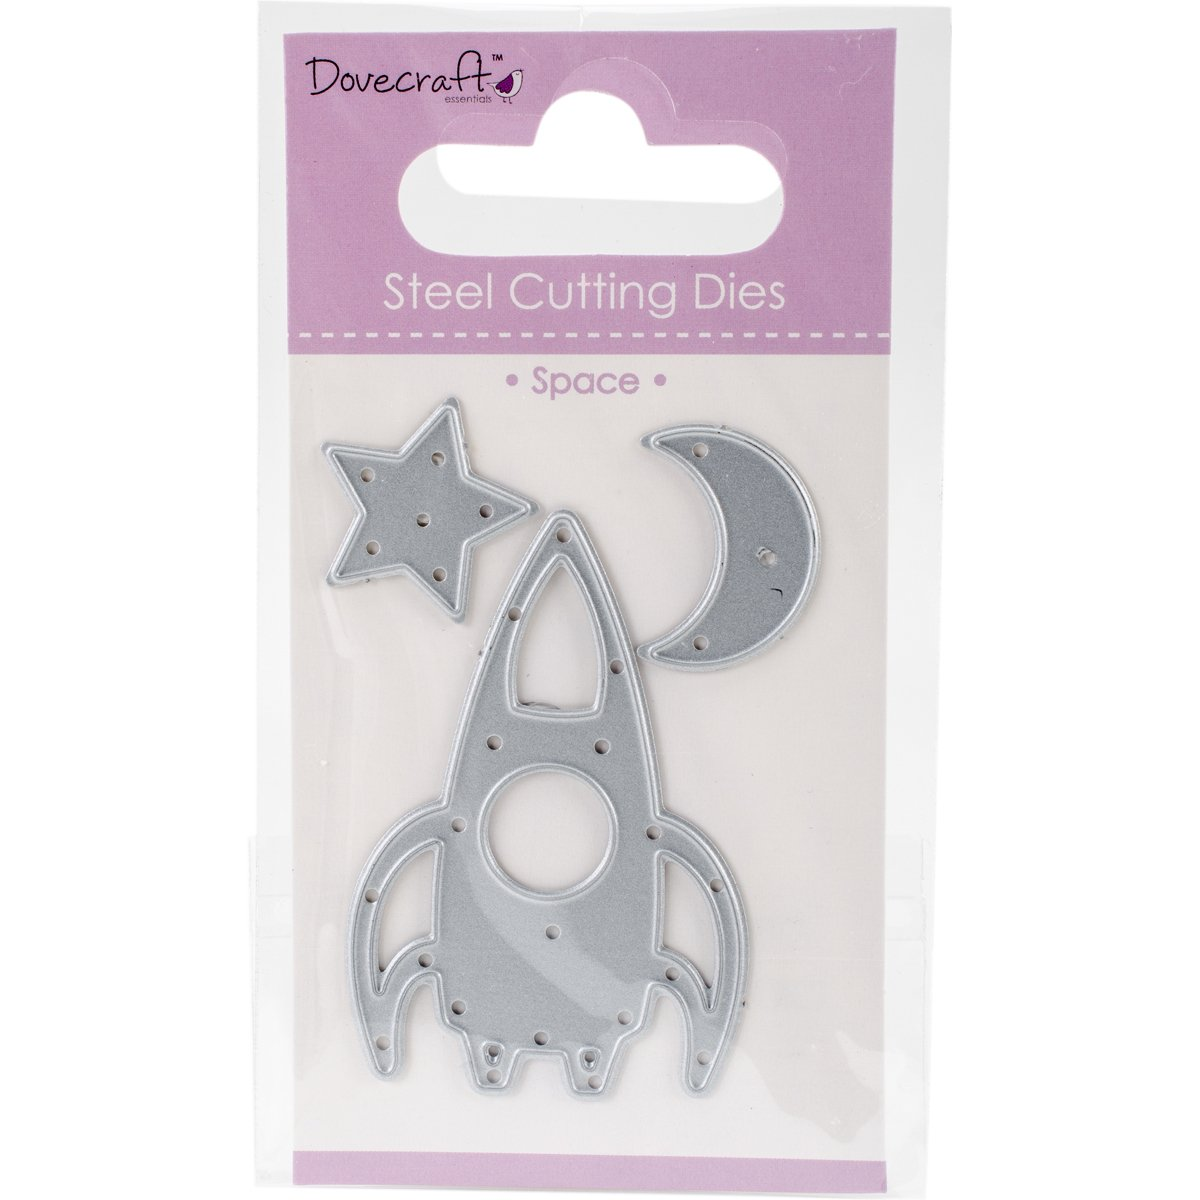 Butterfly Dovecraft Value Metal Cutting Dies